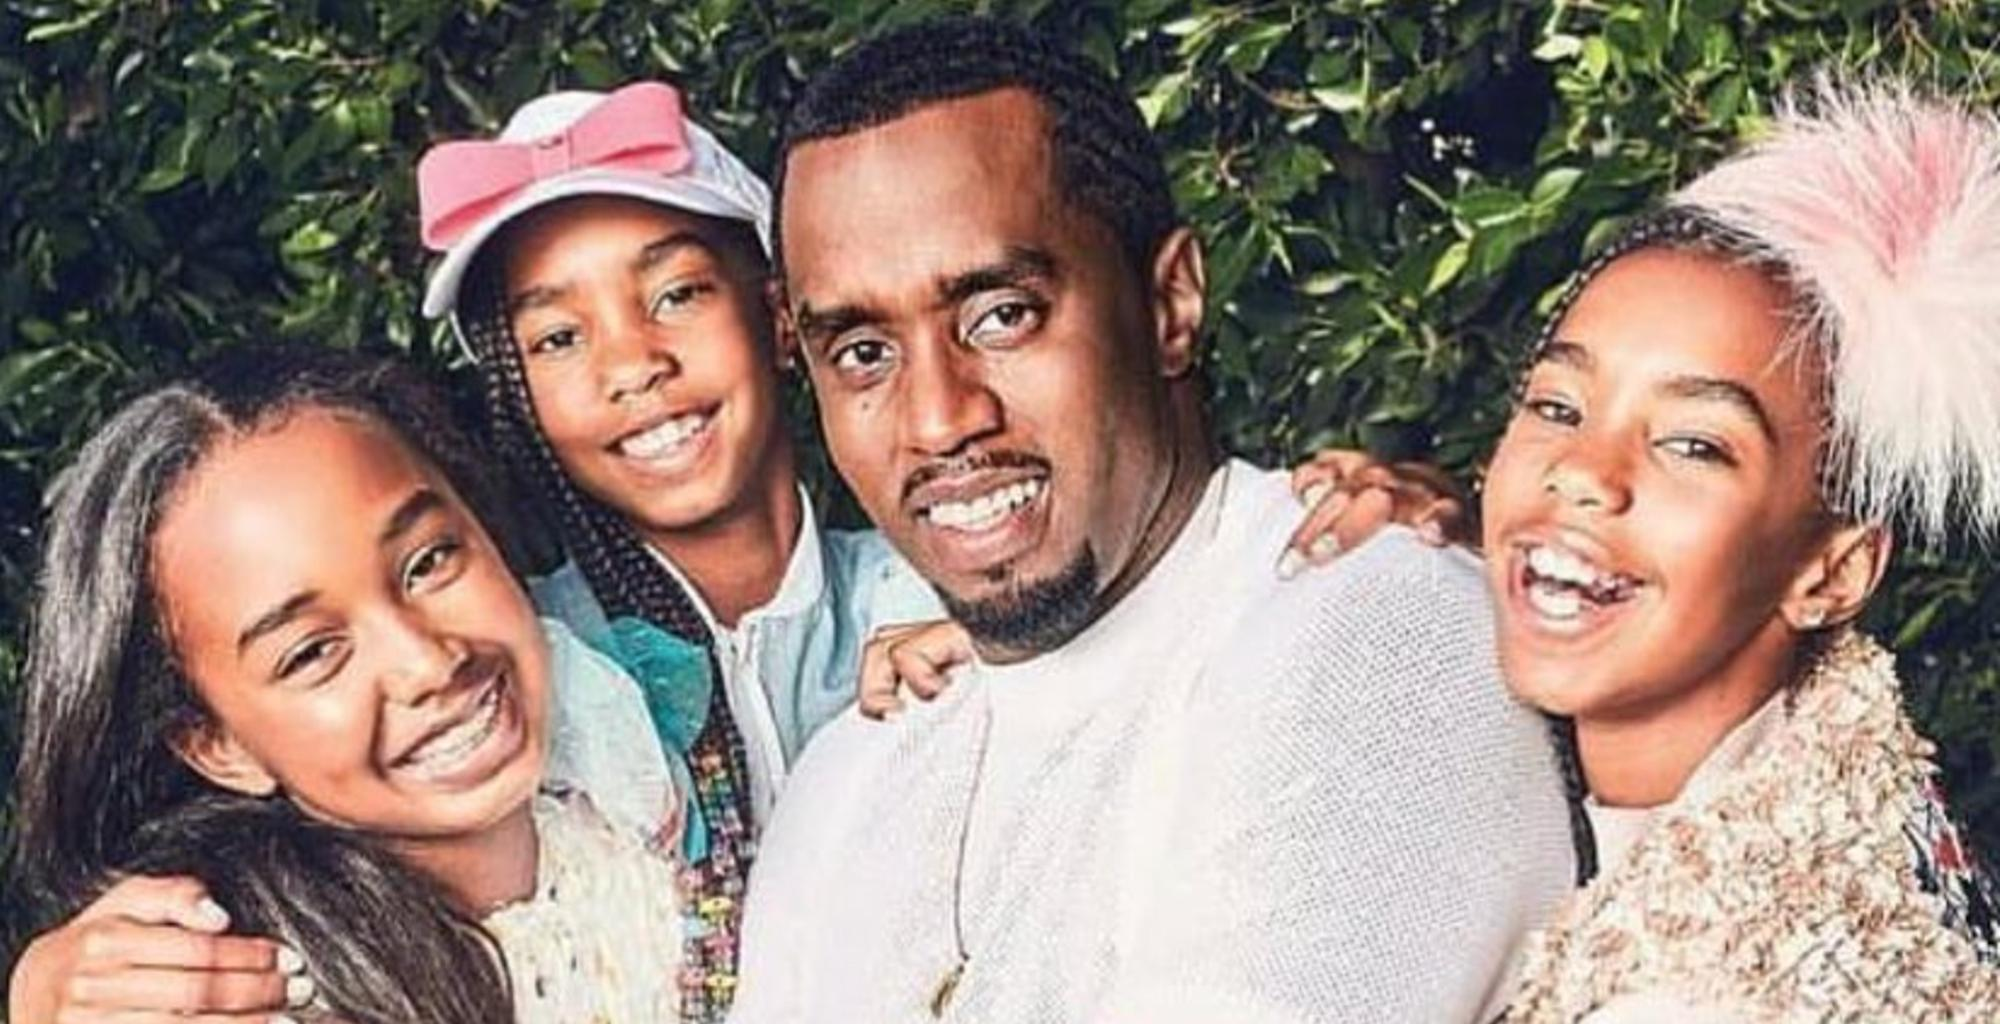 Diddy Is Teaching His Daughter, Chance Some Dance Moves - Fans Are Impressed By This Father-Daughter Moment, Following Diddy's Recent Breakdown